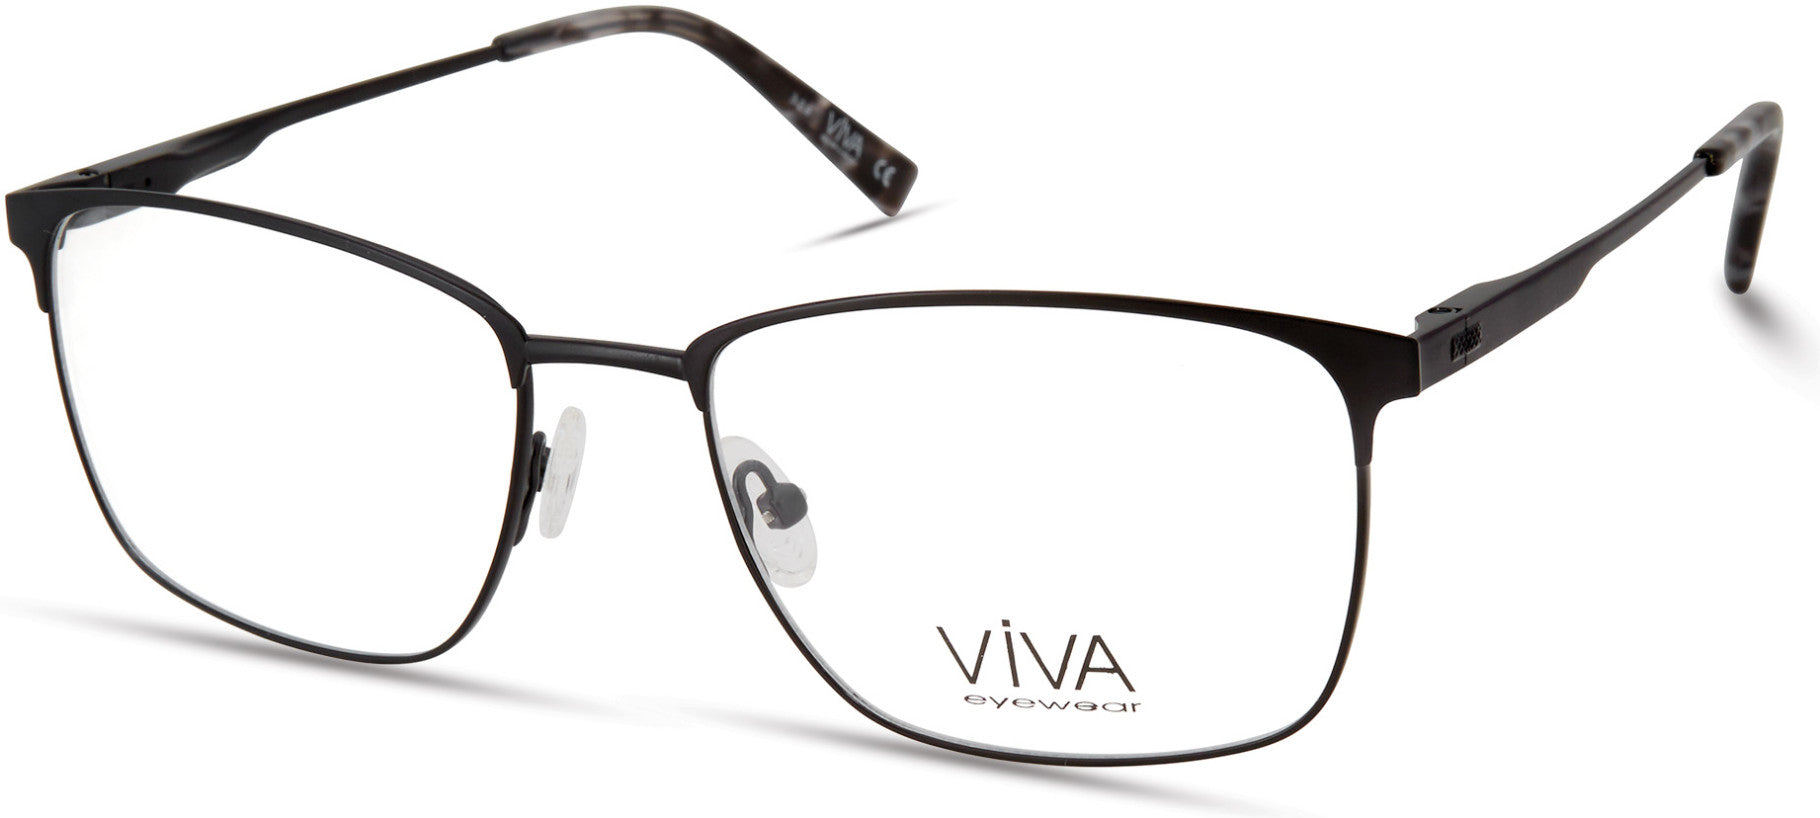 Viva VV4043 Rectangular Eyeglasses For Men